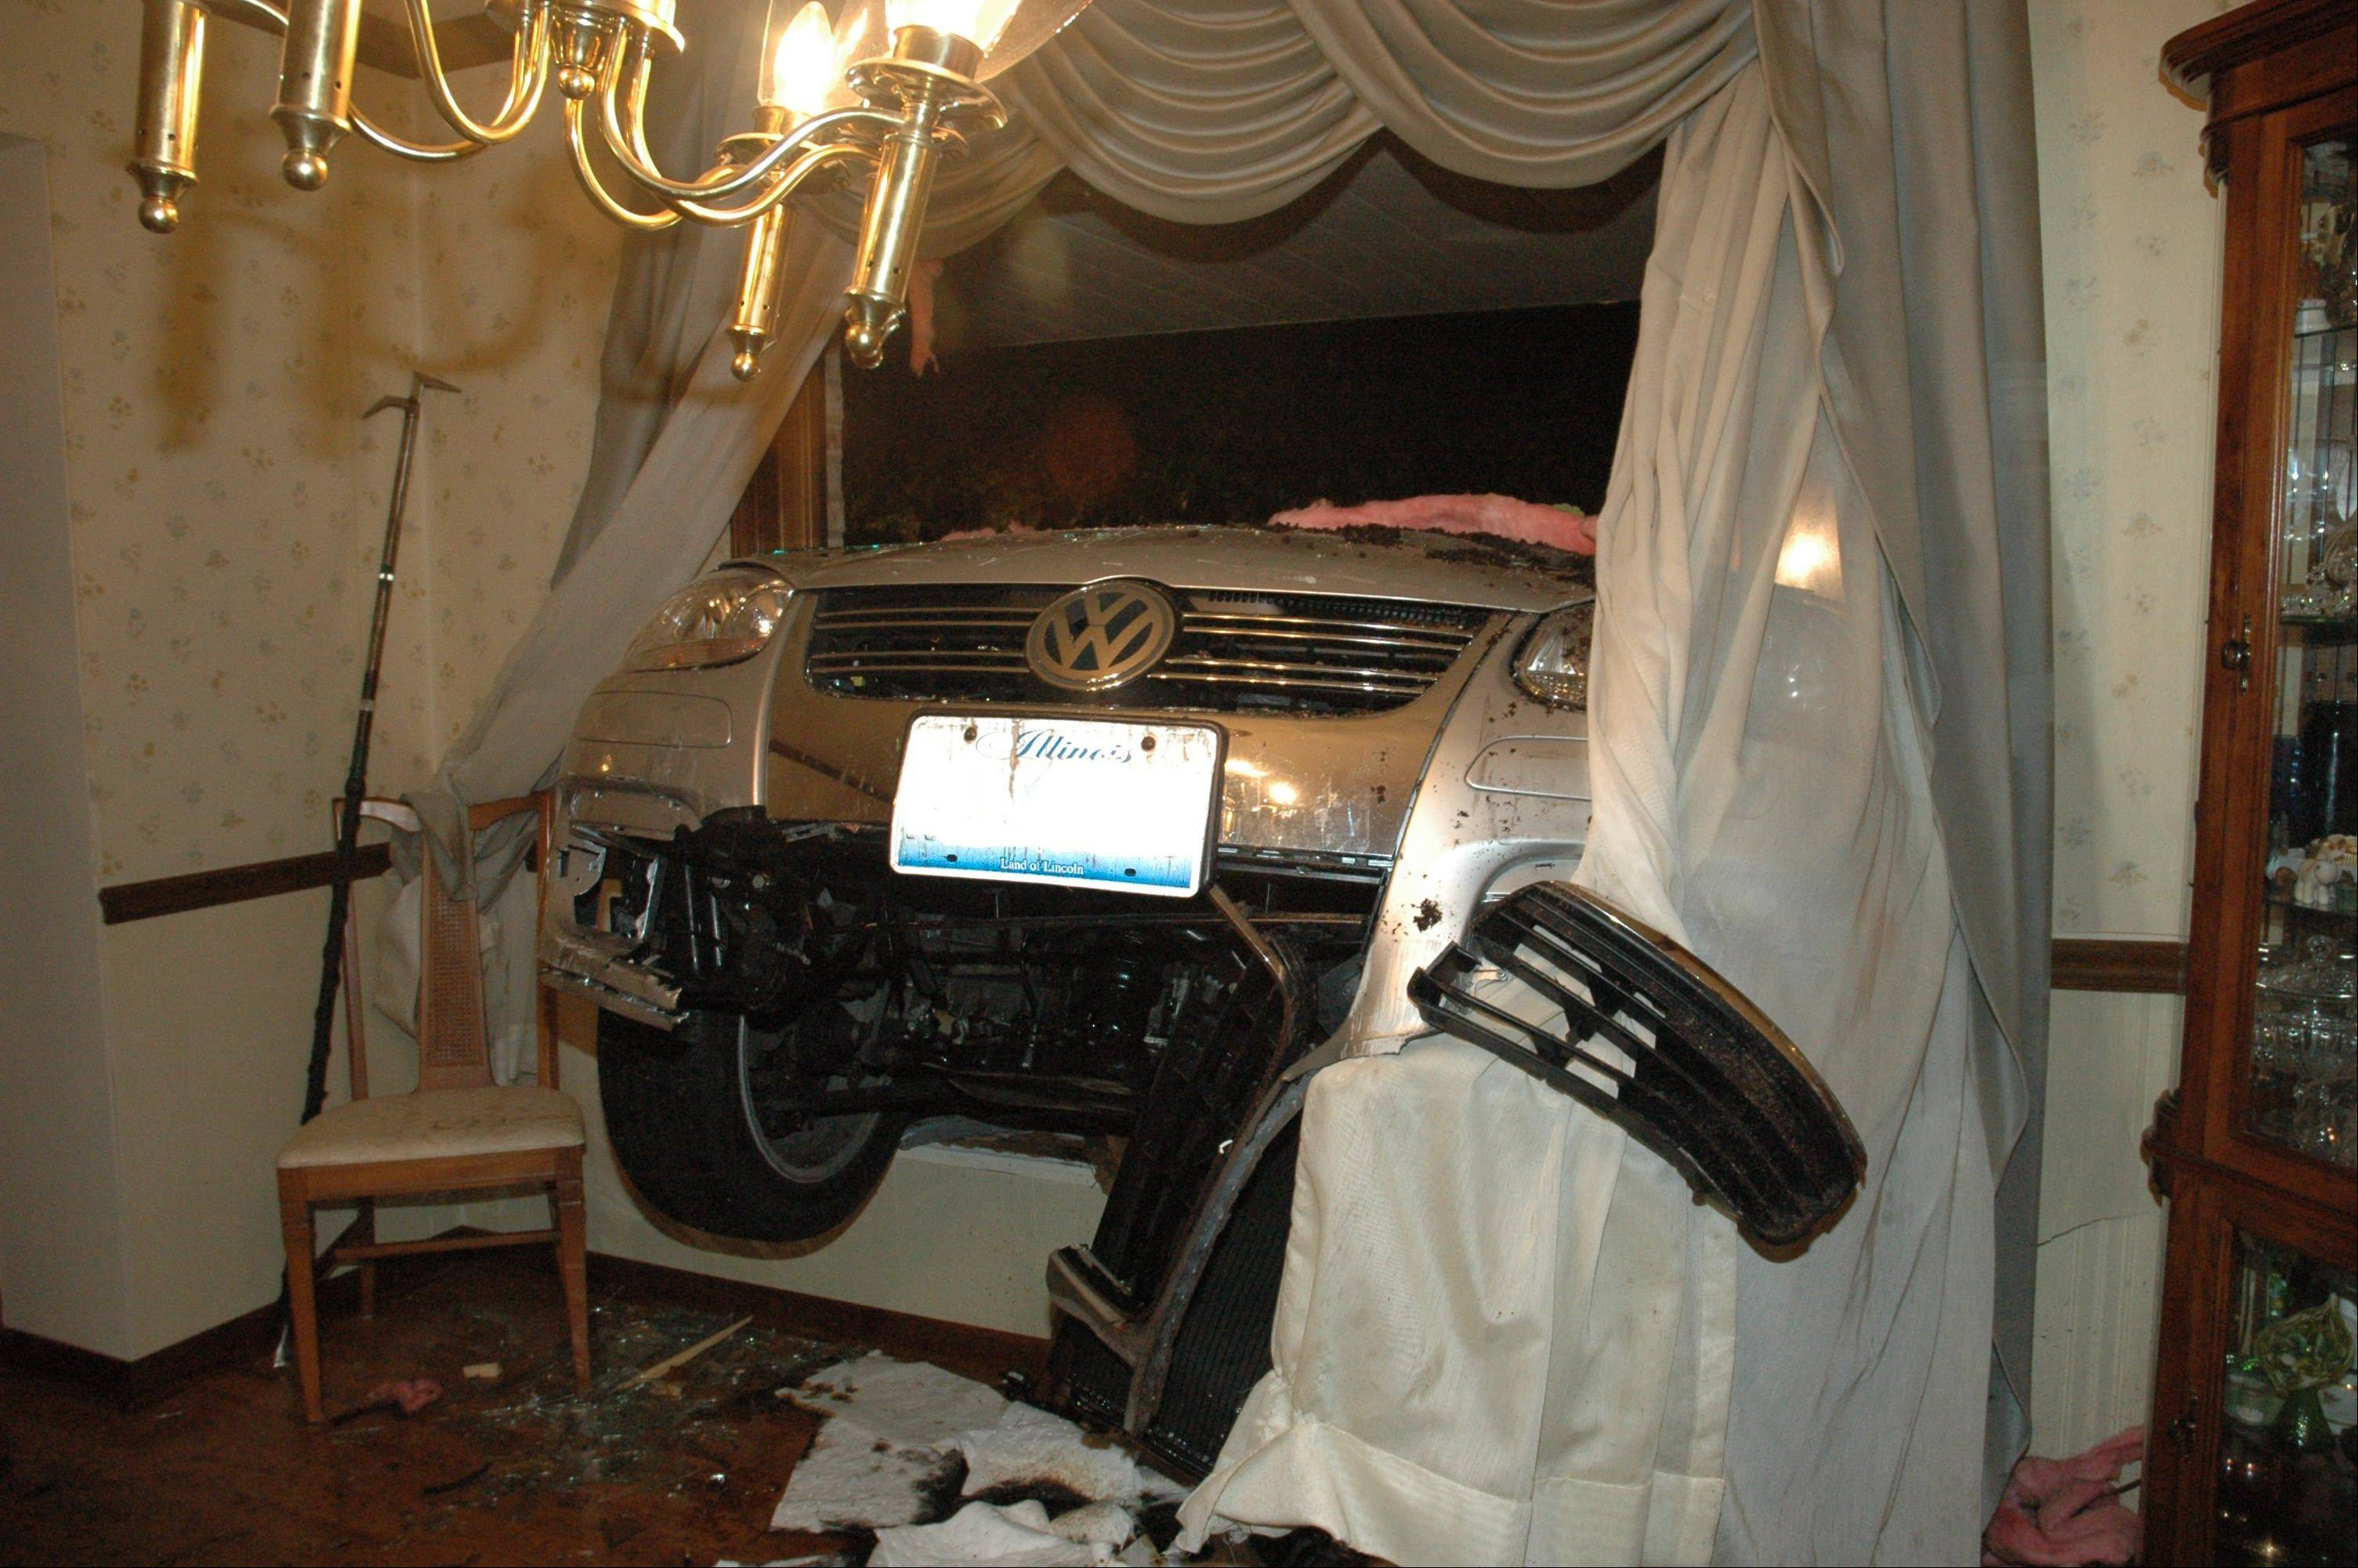 Residents were home but uninjured late Monday when a car driven by an intoxicated teenager drove into their dining room.